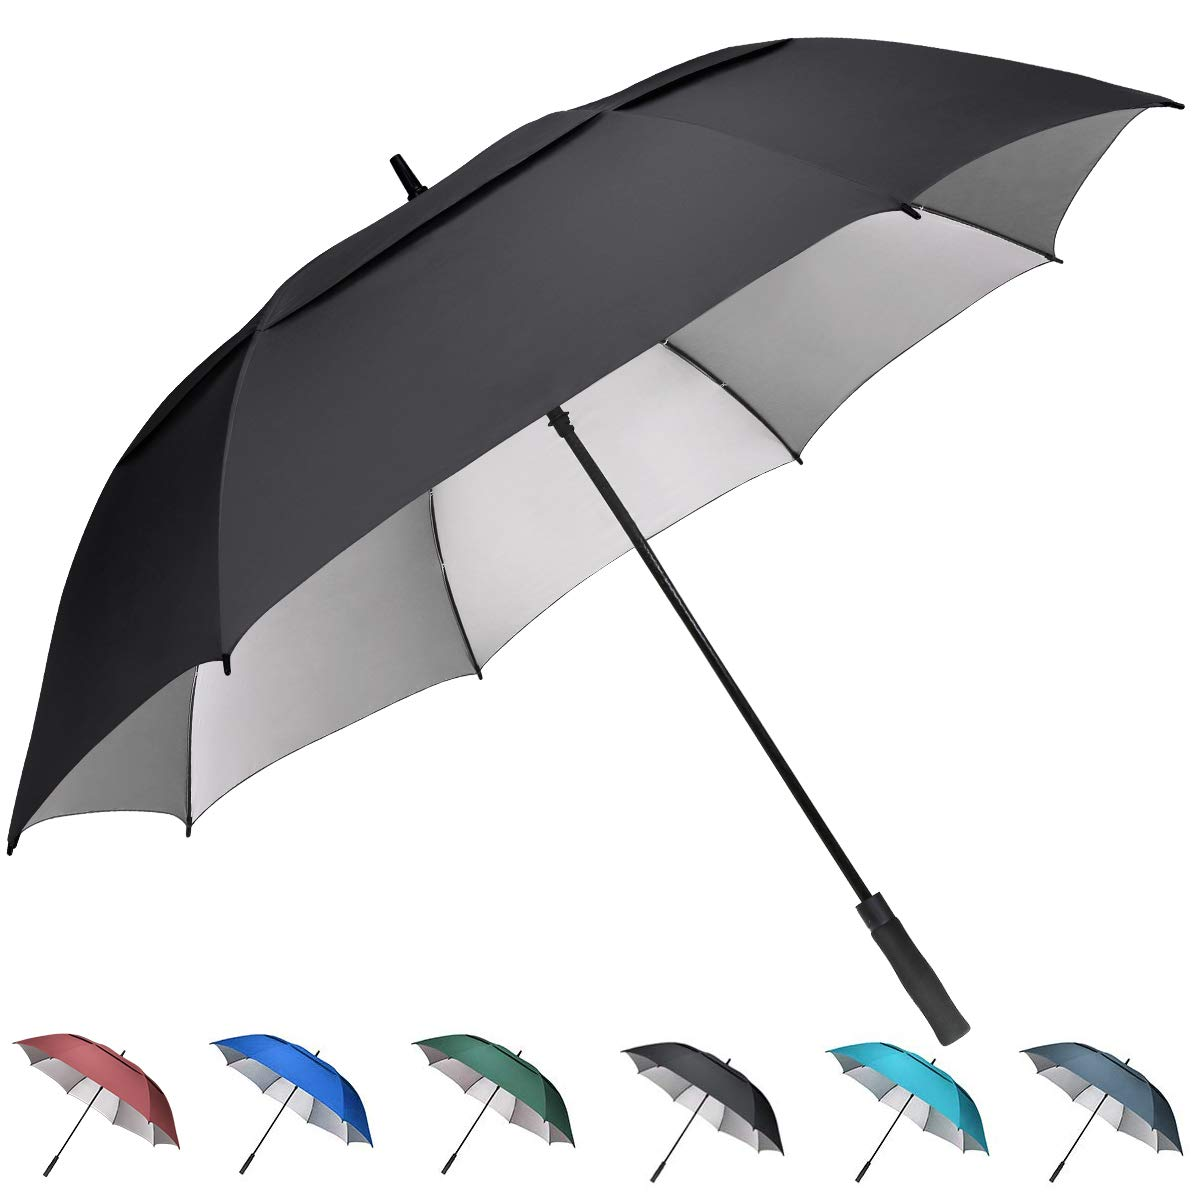 G4Free 54/62/68 inch Extra Large Windproof Golf Umbrella UV Protection  Automatic Open Double Canopy Vented Sun Rain Umbrella Waterproof Oversize  Stick